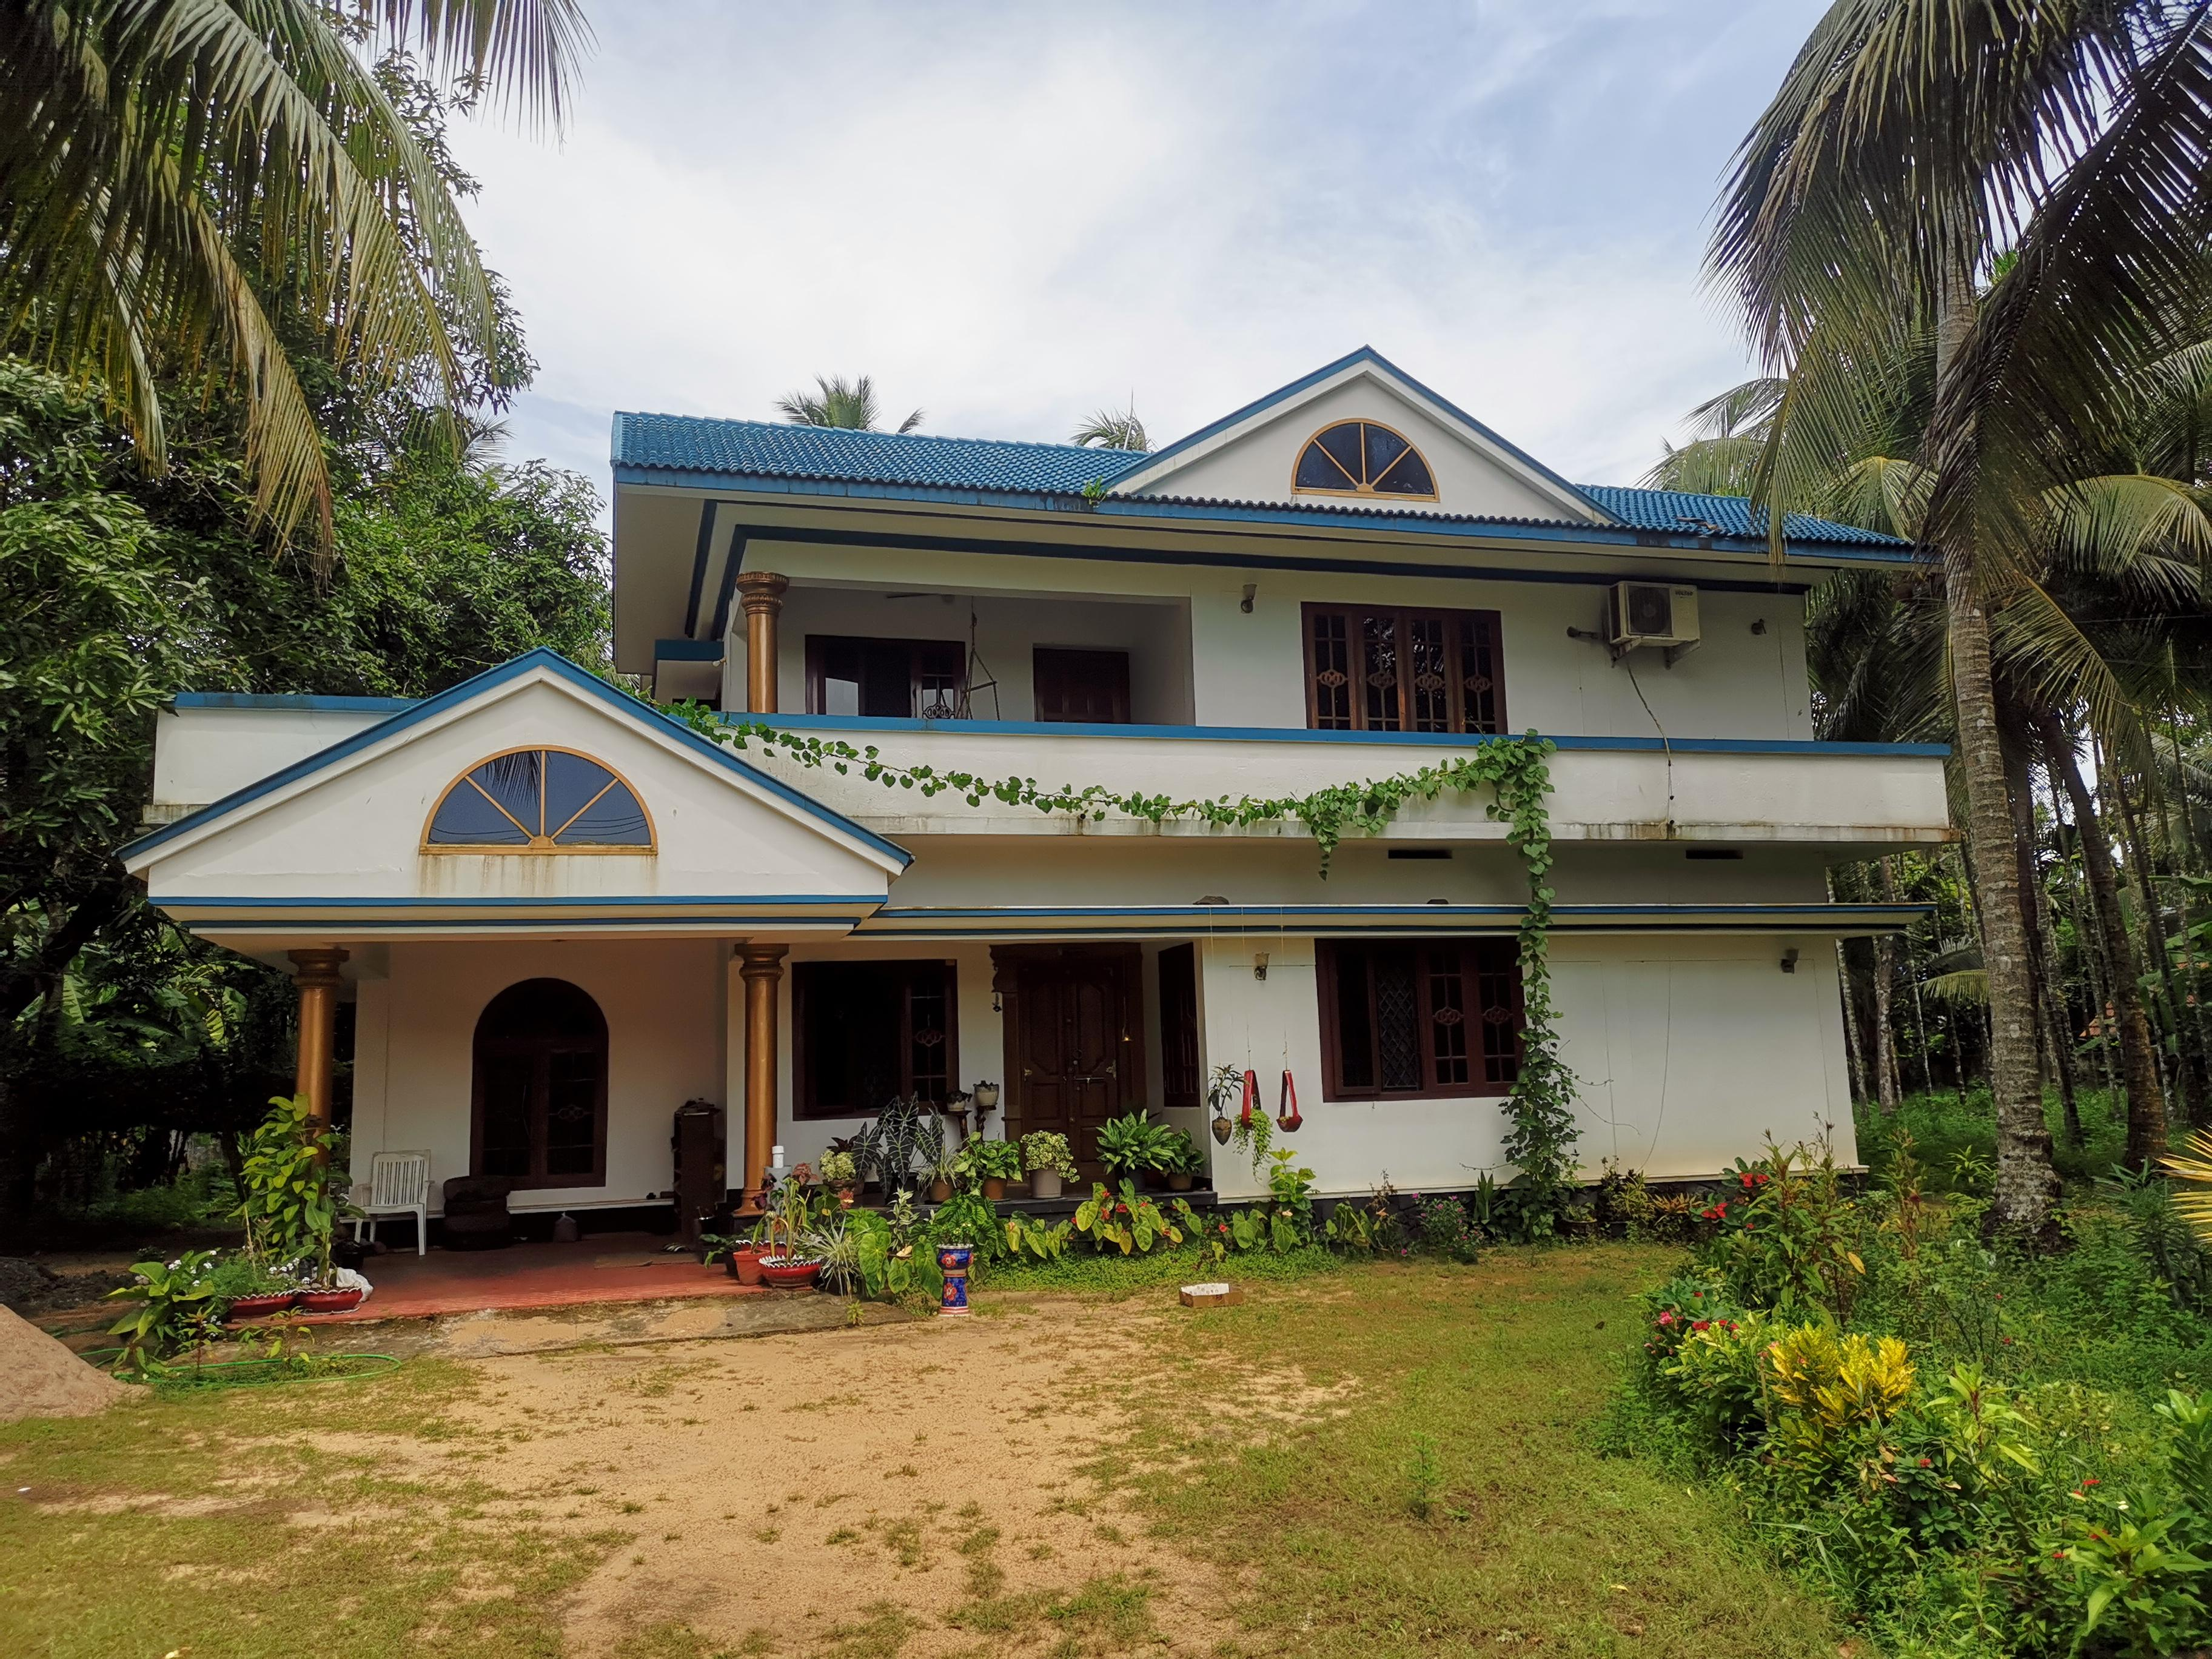 4 BHK Villa in 80 cents land for Sale in Valapad, Thrissur